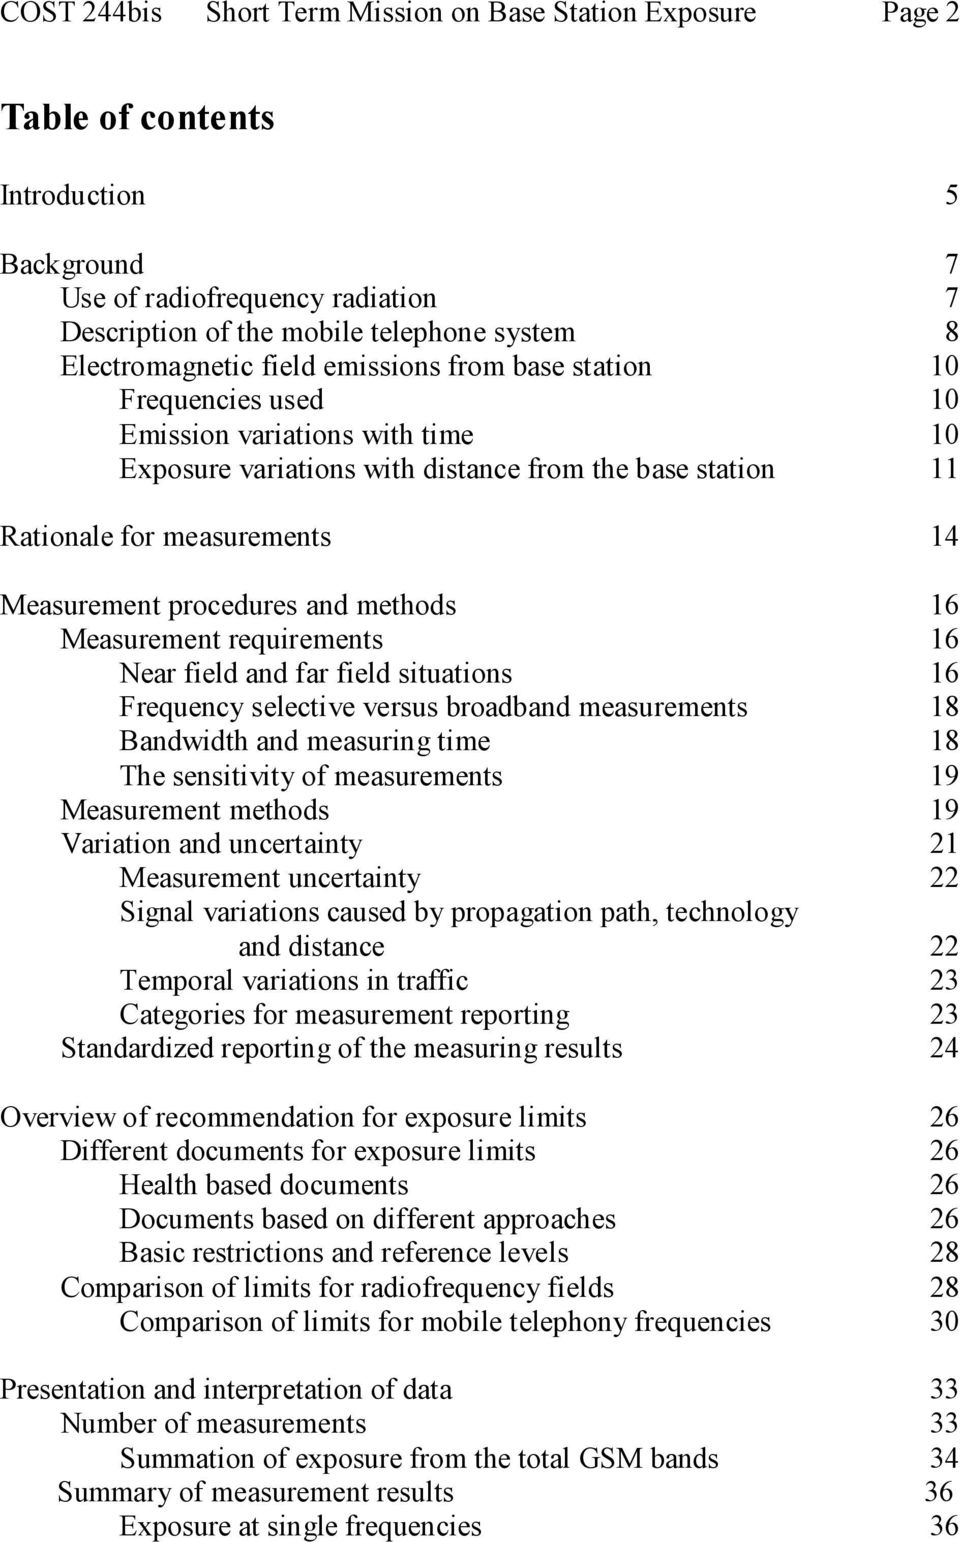 Measurement procedures and methods 16 Measurement requirements 16 Near field and far field situations 16 Frequency selective versus broadband measurements 18 Bandwidth and measuring time 18 The